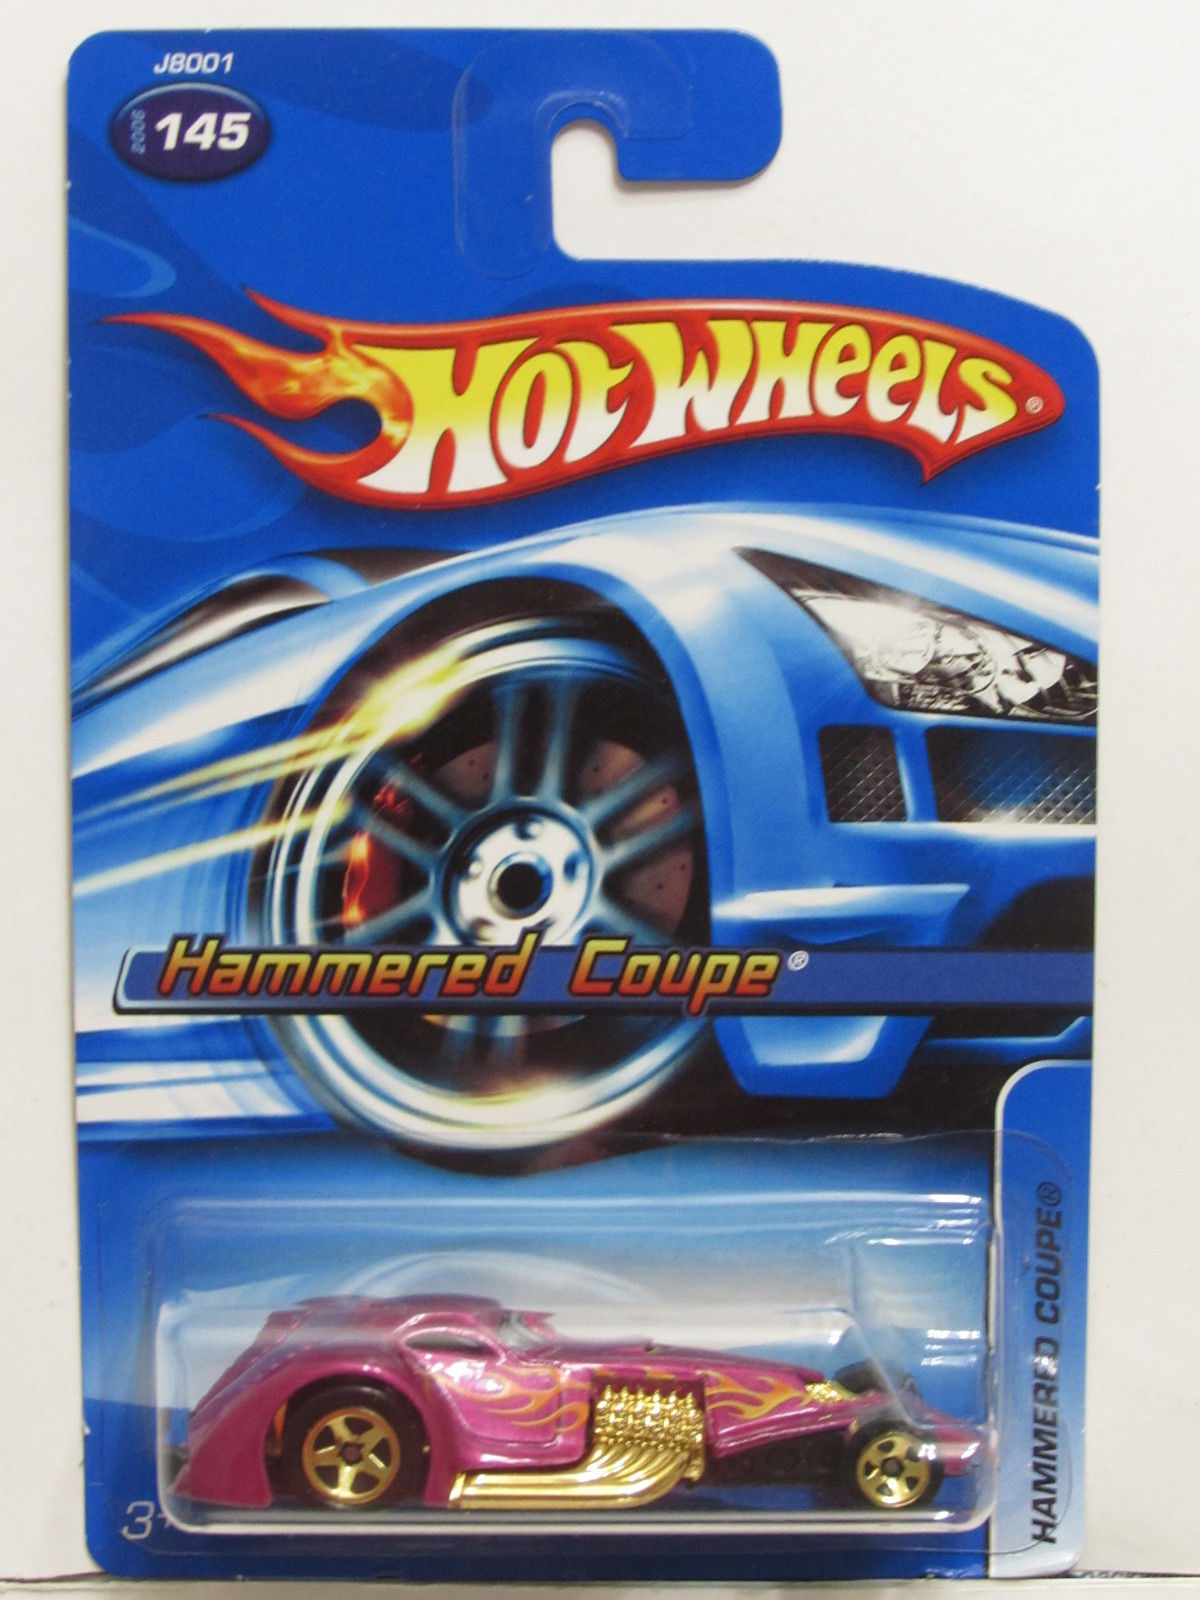 HOT WHEELS 2006 HAMMERED COUPE #145 E+